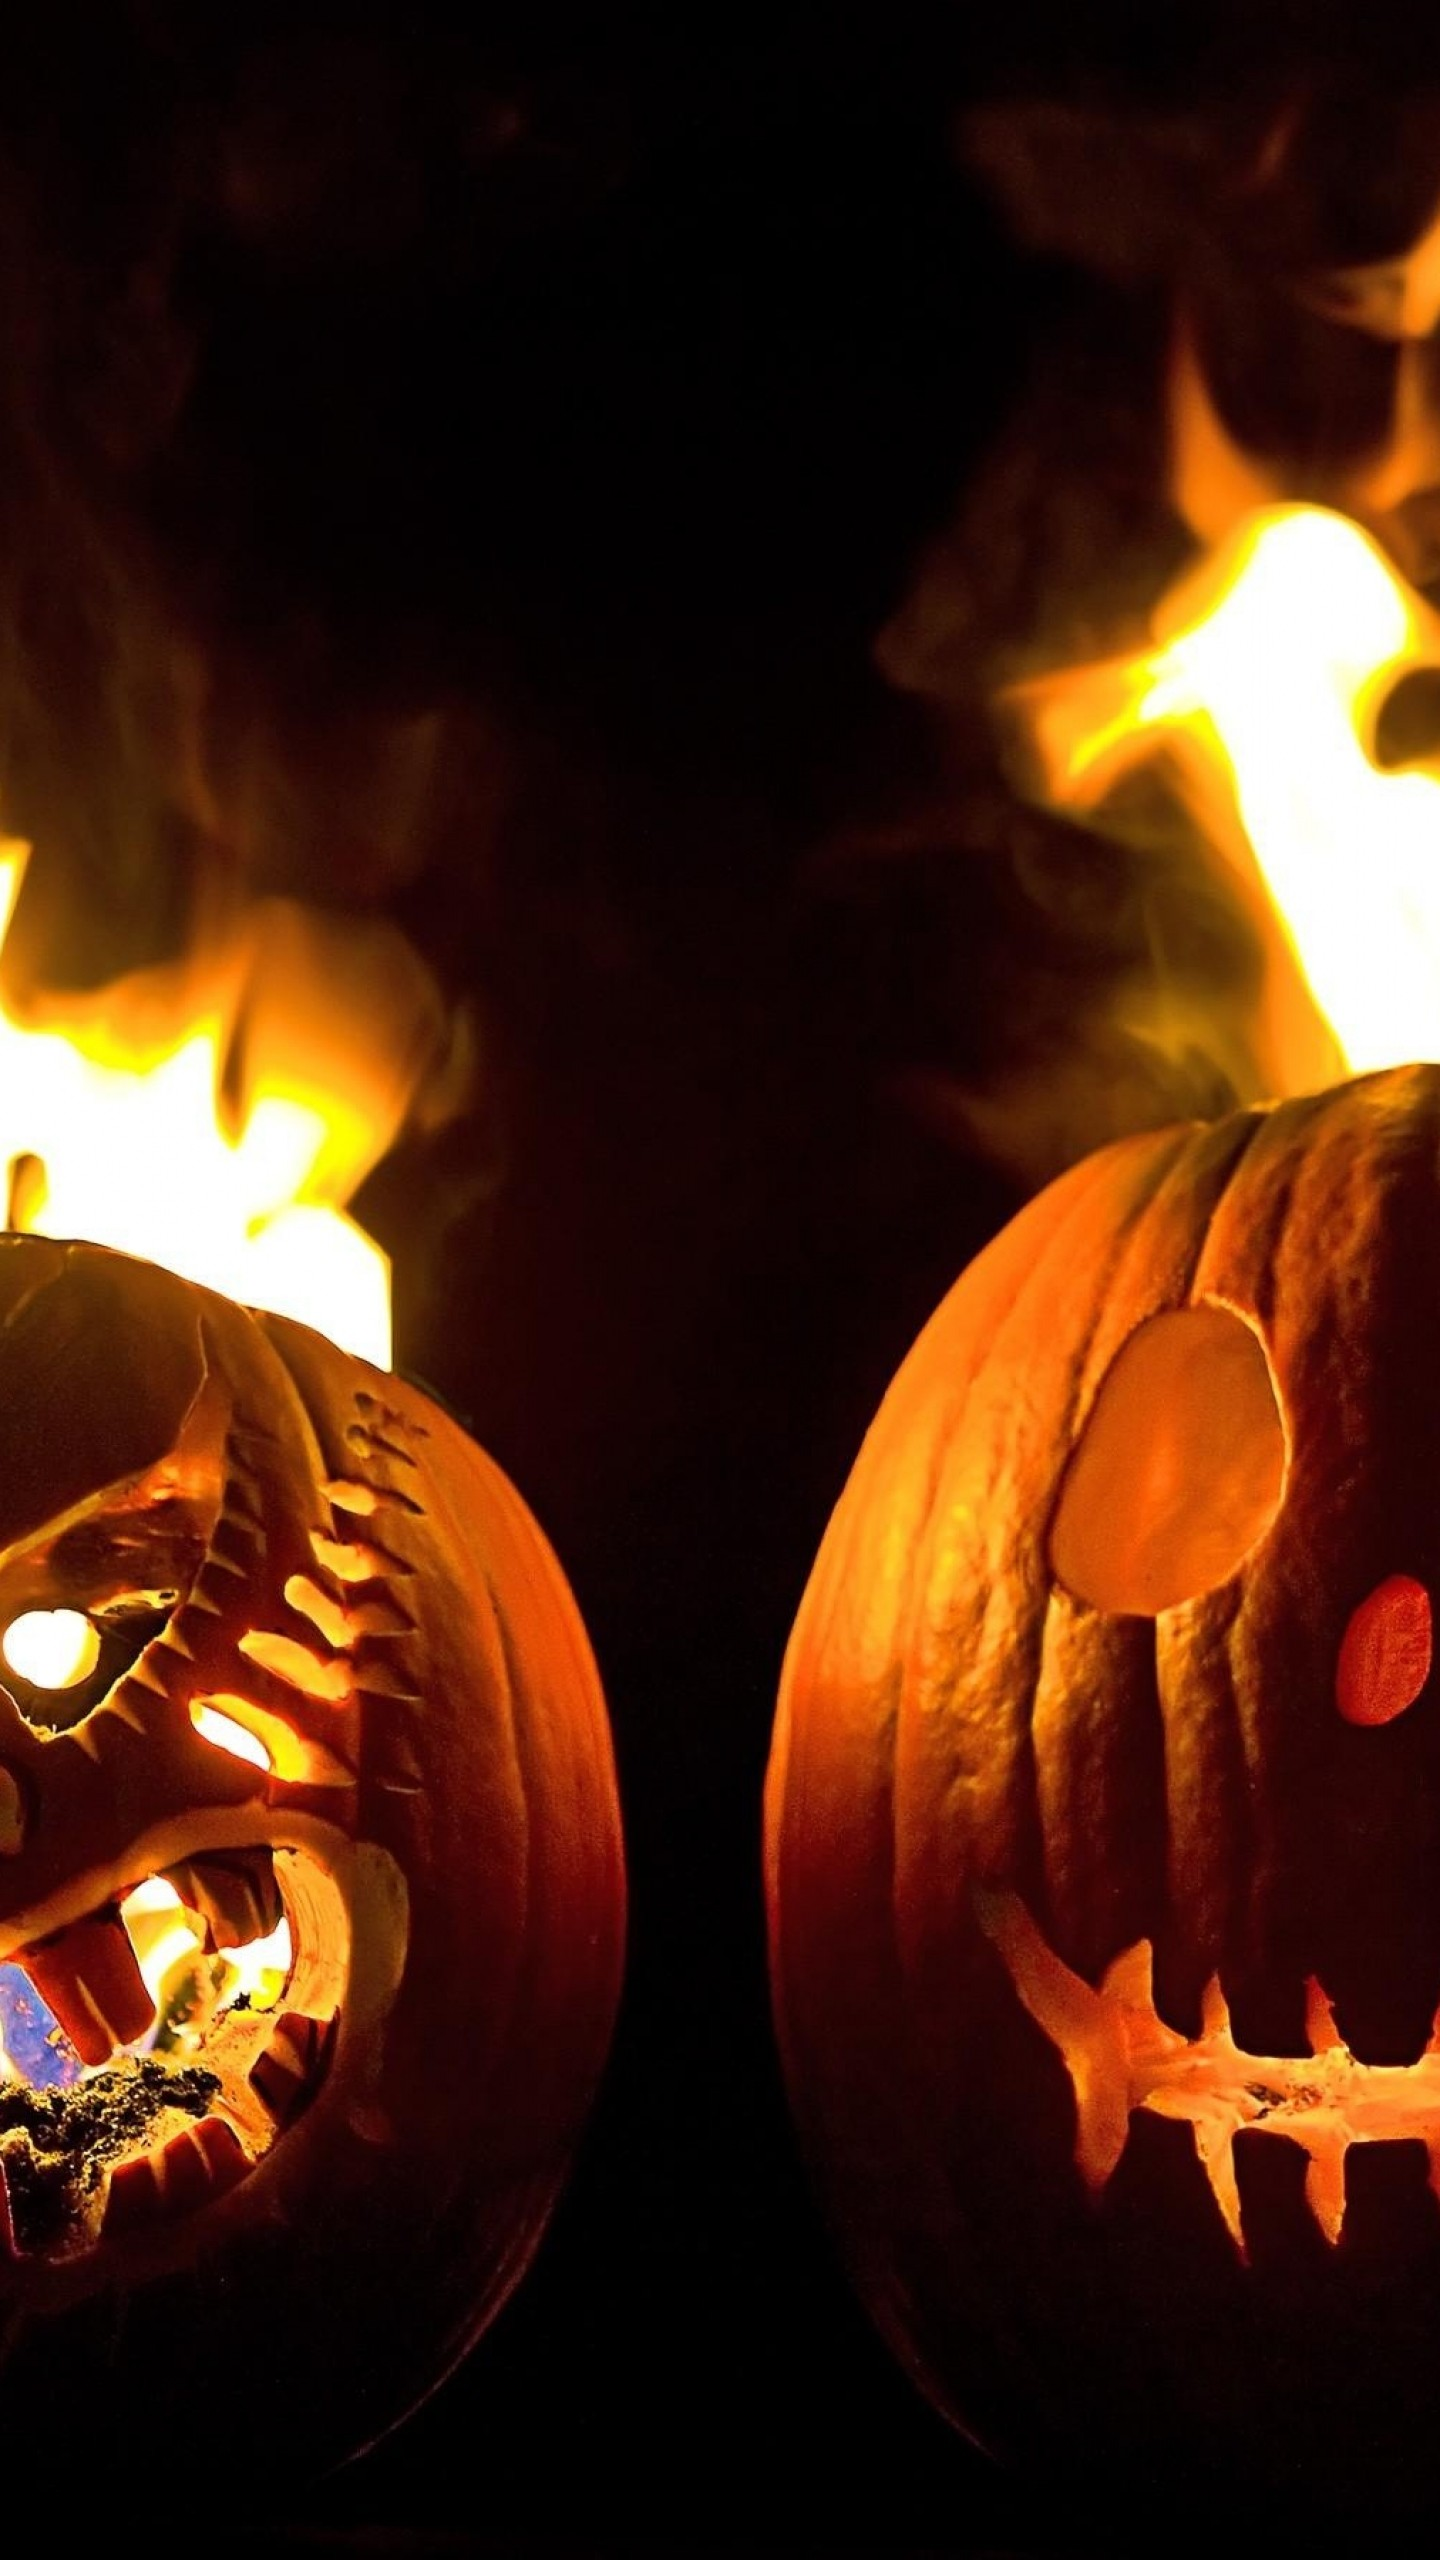 1440x2560 Preview wallpaper halloween, holiday, pumpkin, faces, steam, fire, black  background